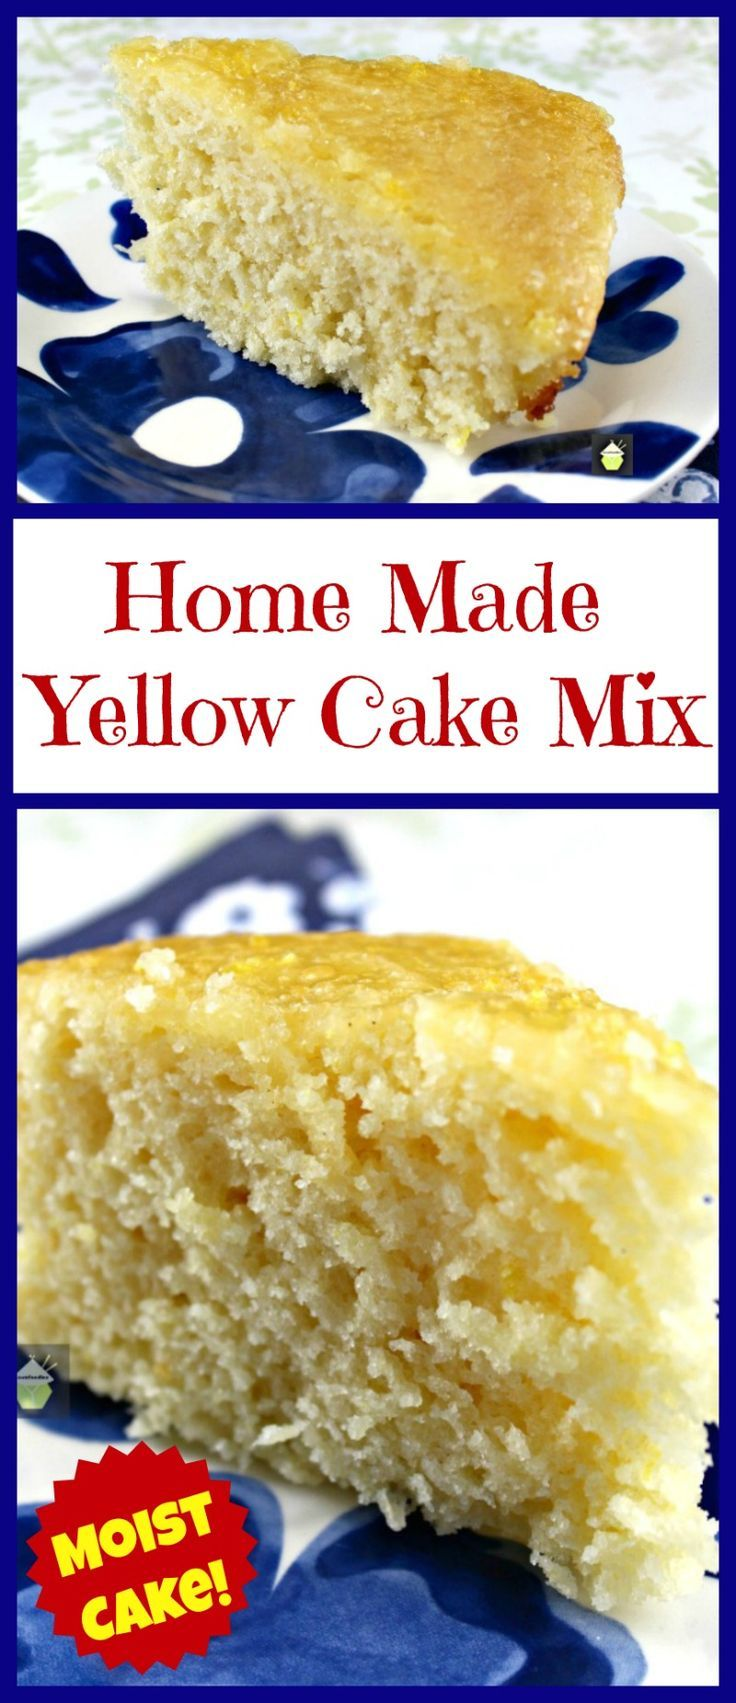 Home Made Yellow Cake Mix. This is a lovely substitute to the shop bought mixes and gives you a soft, moist cake. | Lovefoodies.com